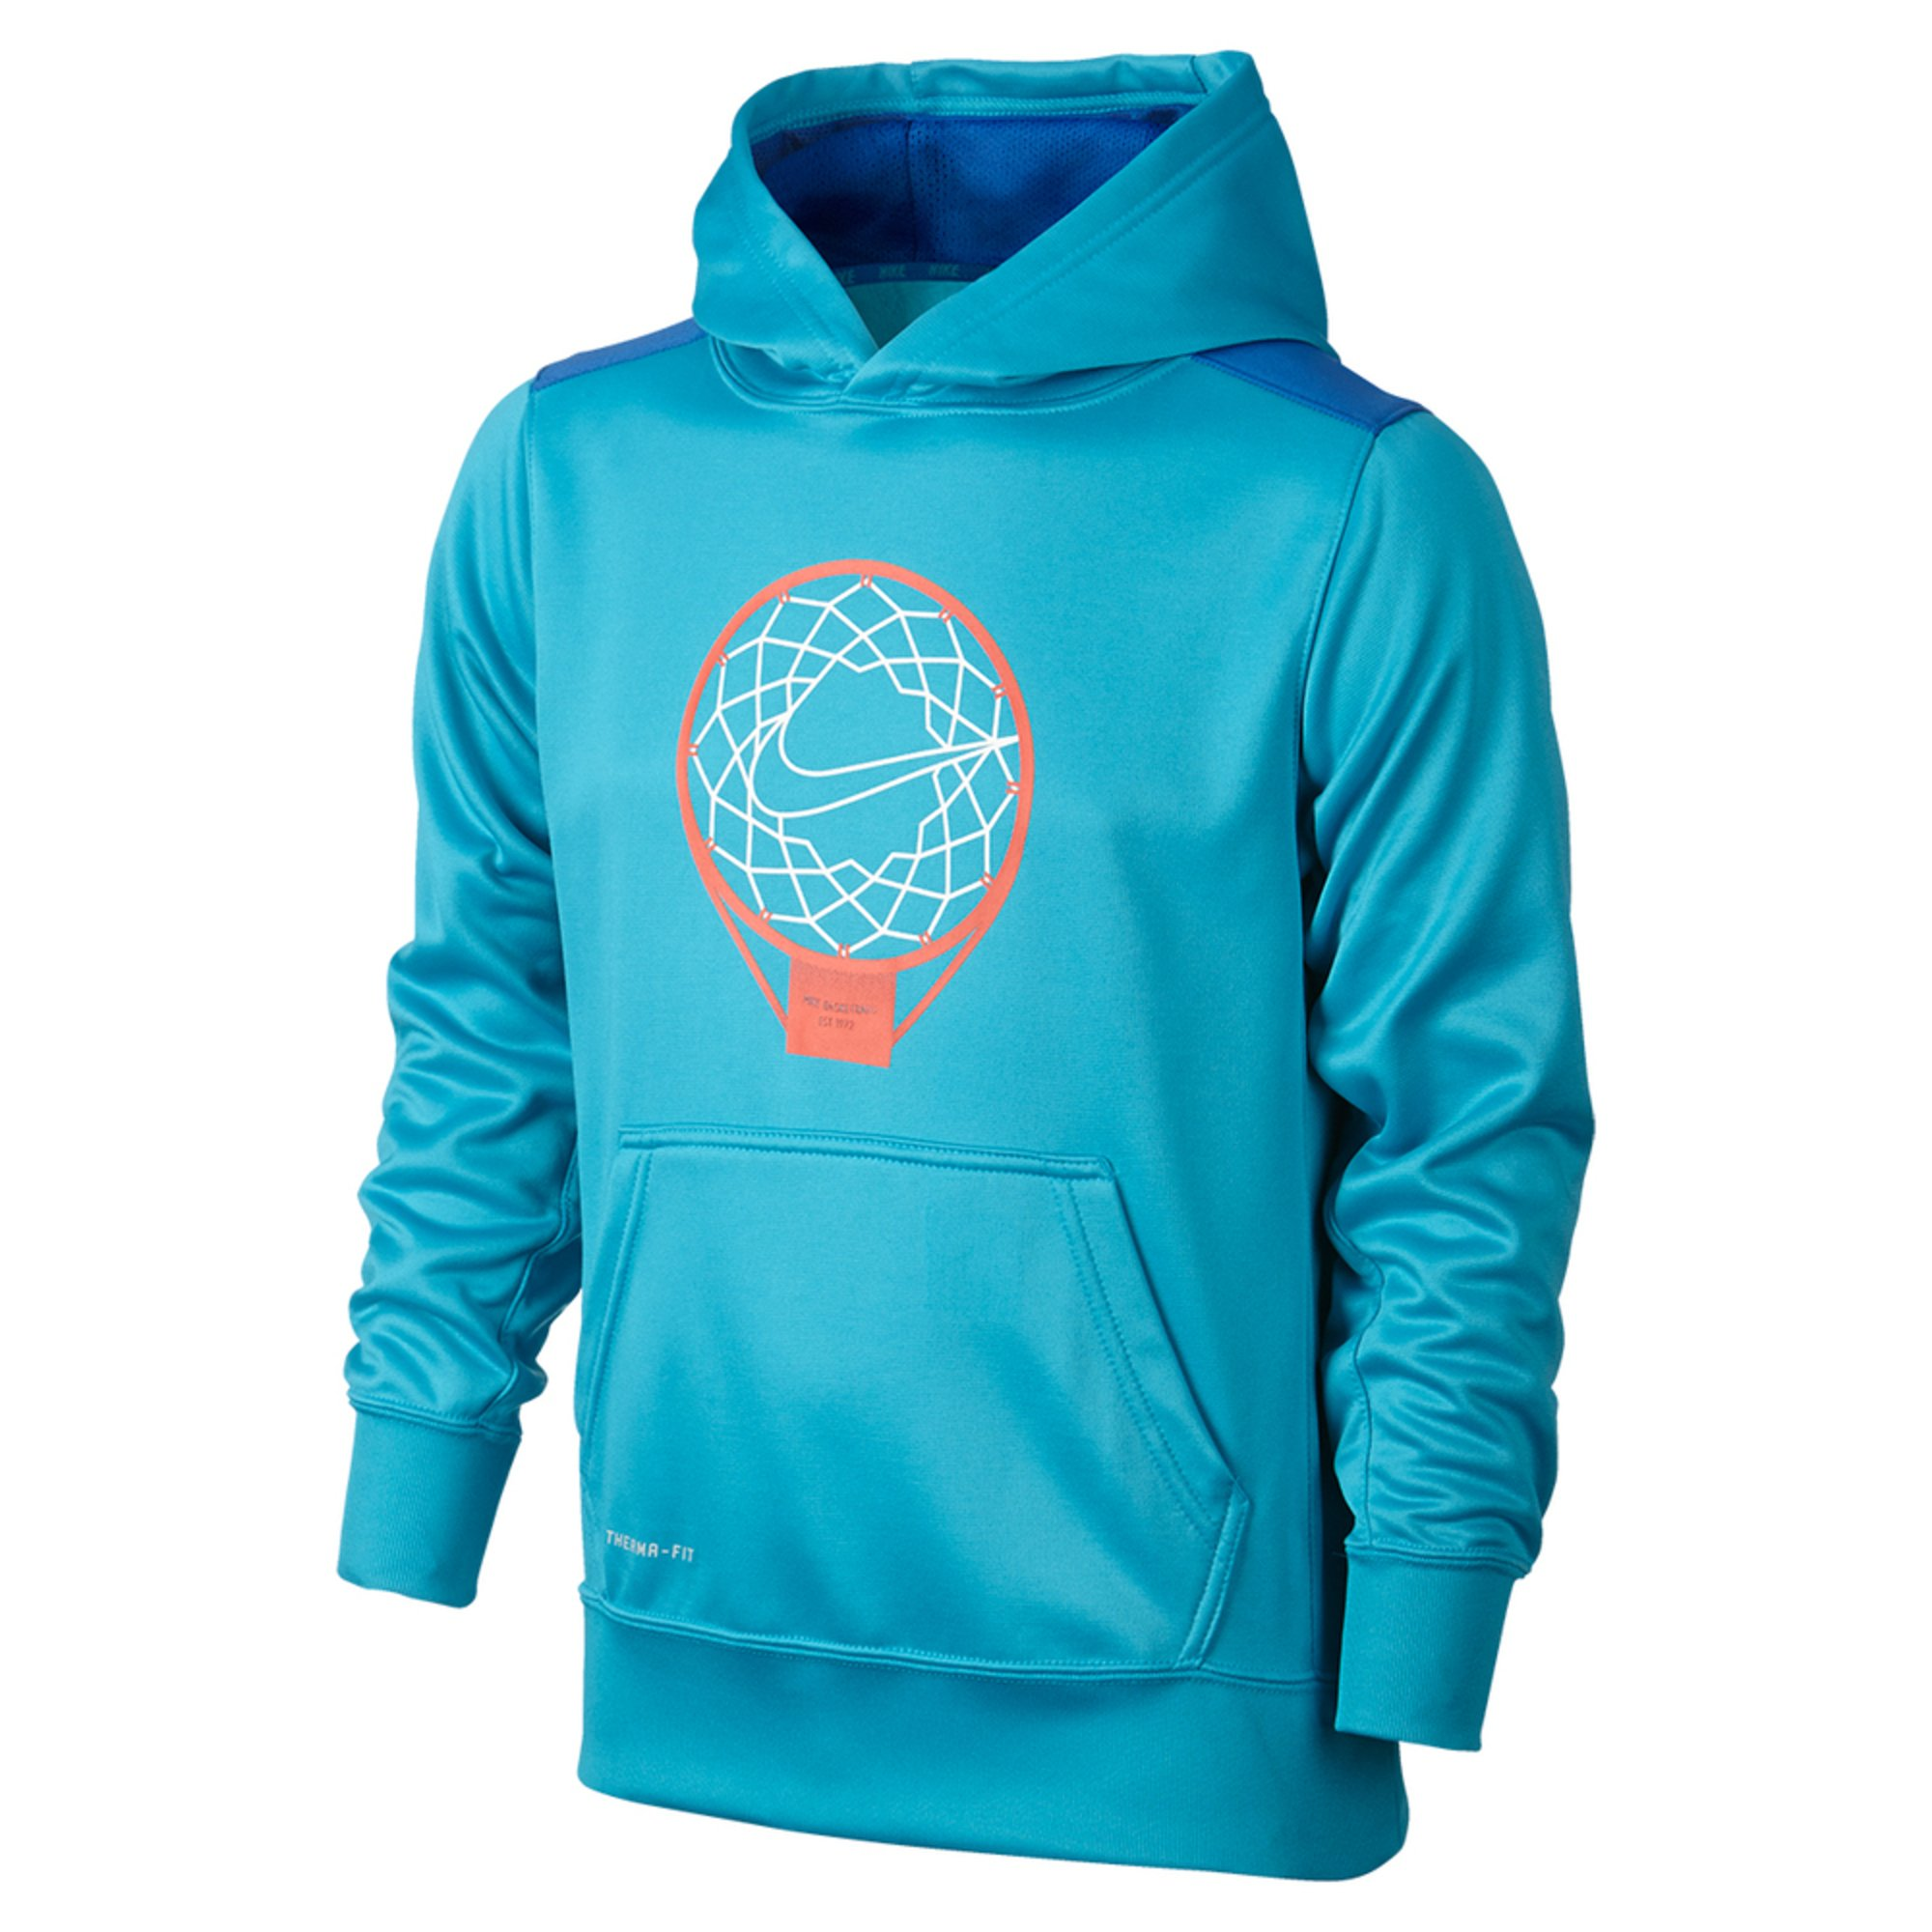 Nike Big Boys' Ko Basketball Hoodie | Big Boys' Hoodies ...